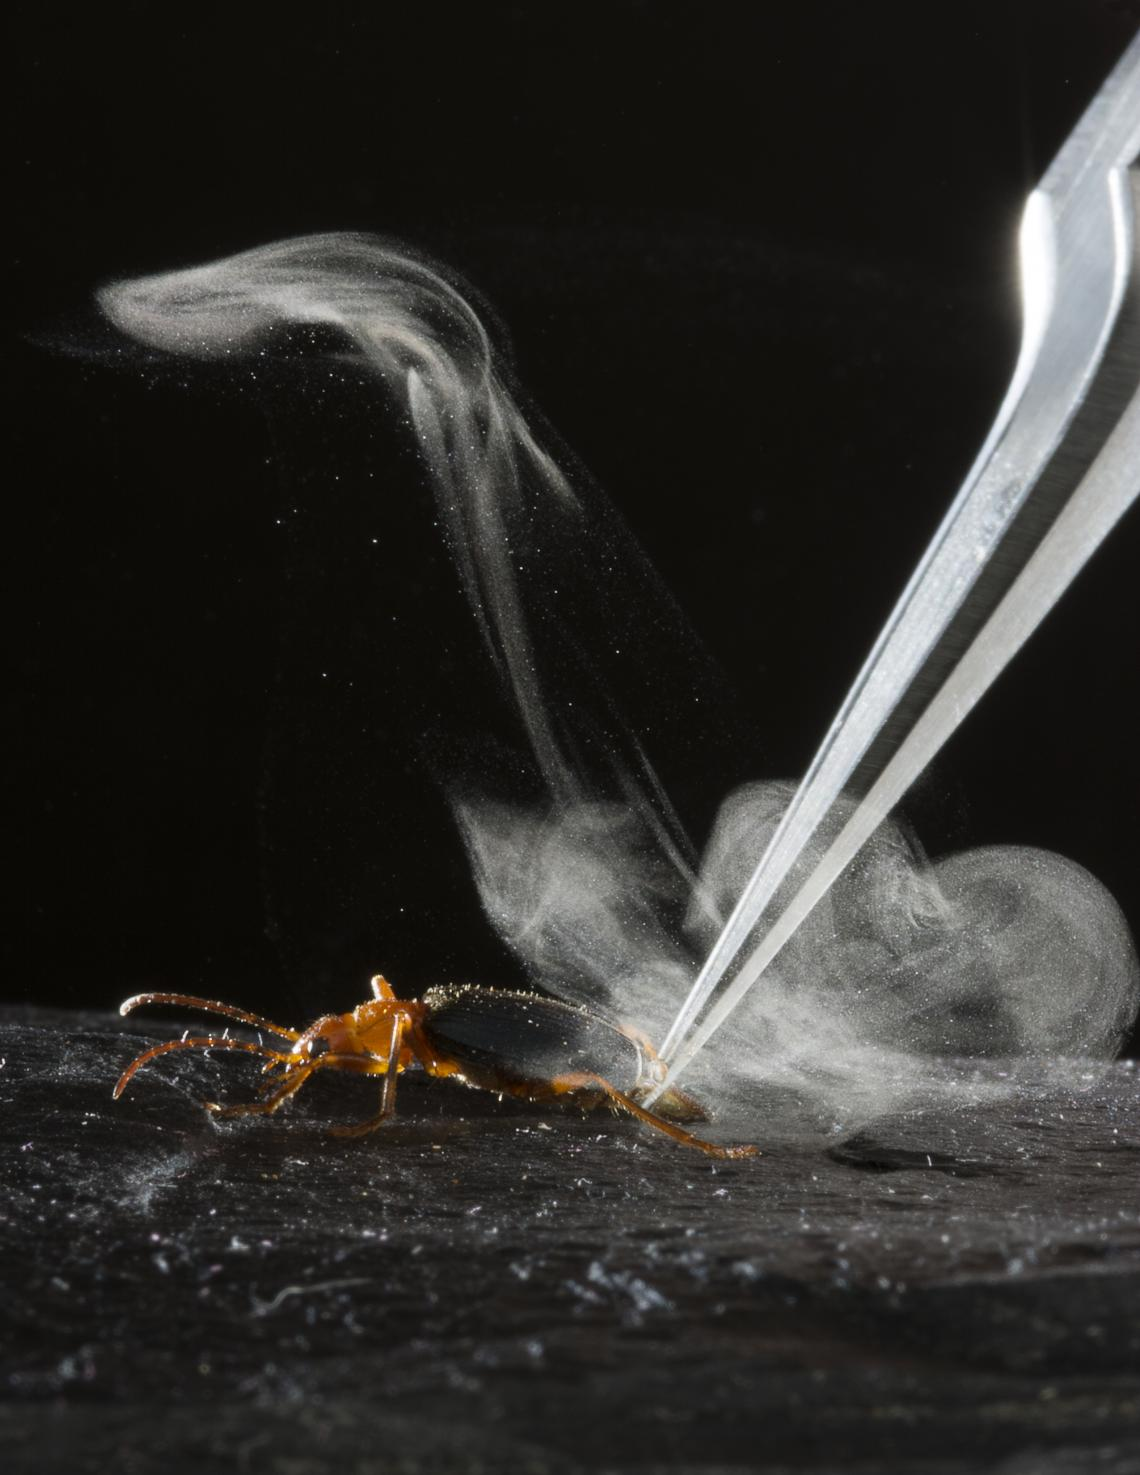 'Gunsmoke' wafts around a researcher's hand after a bombardier beetle of the species Brachinus elongatulus blasted in response to being grasped by forceps.